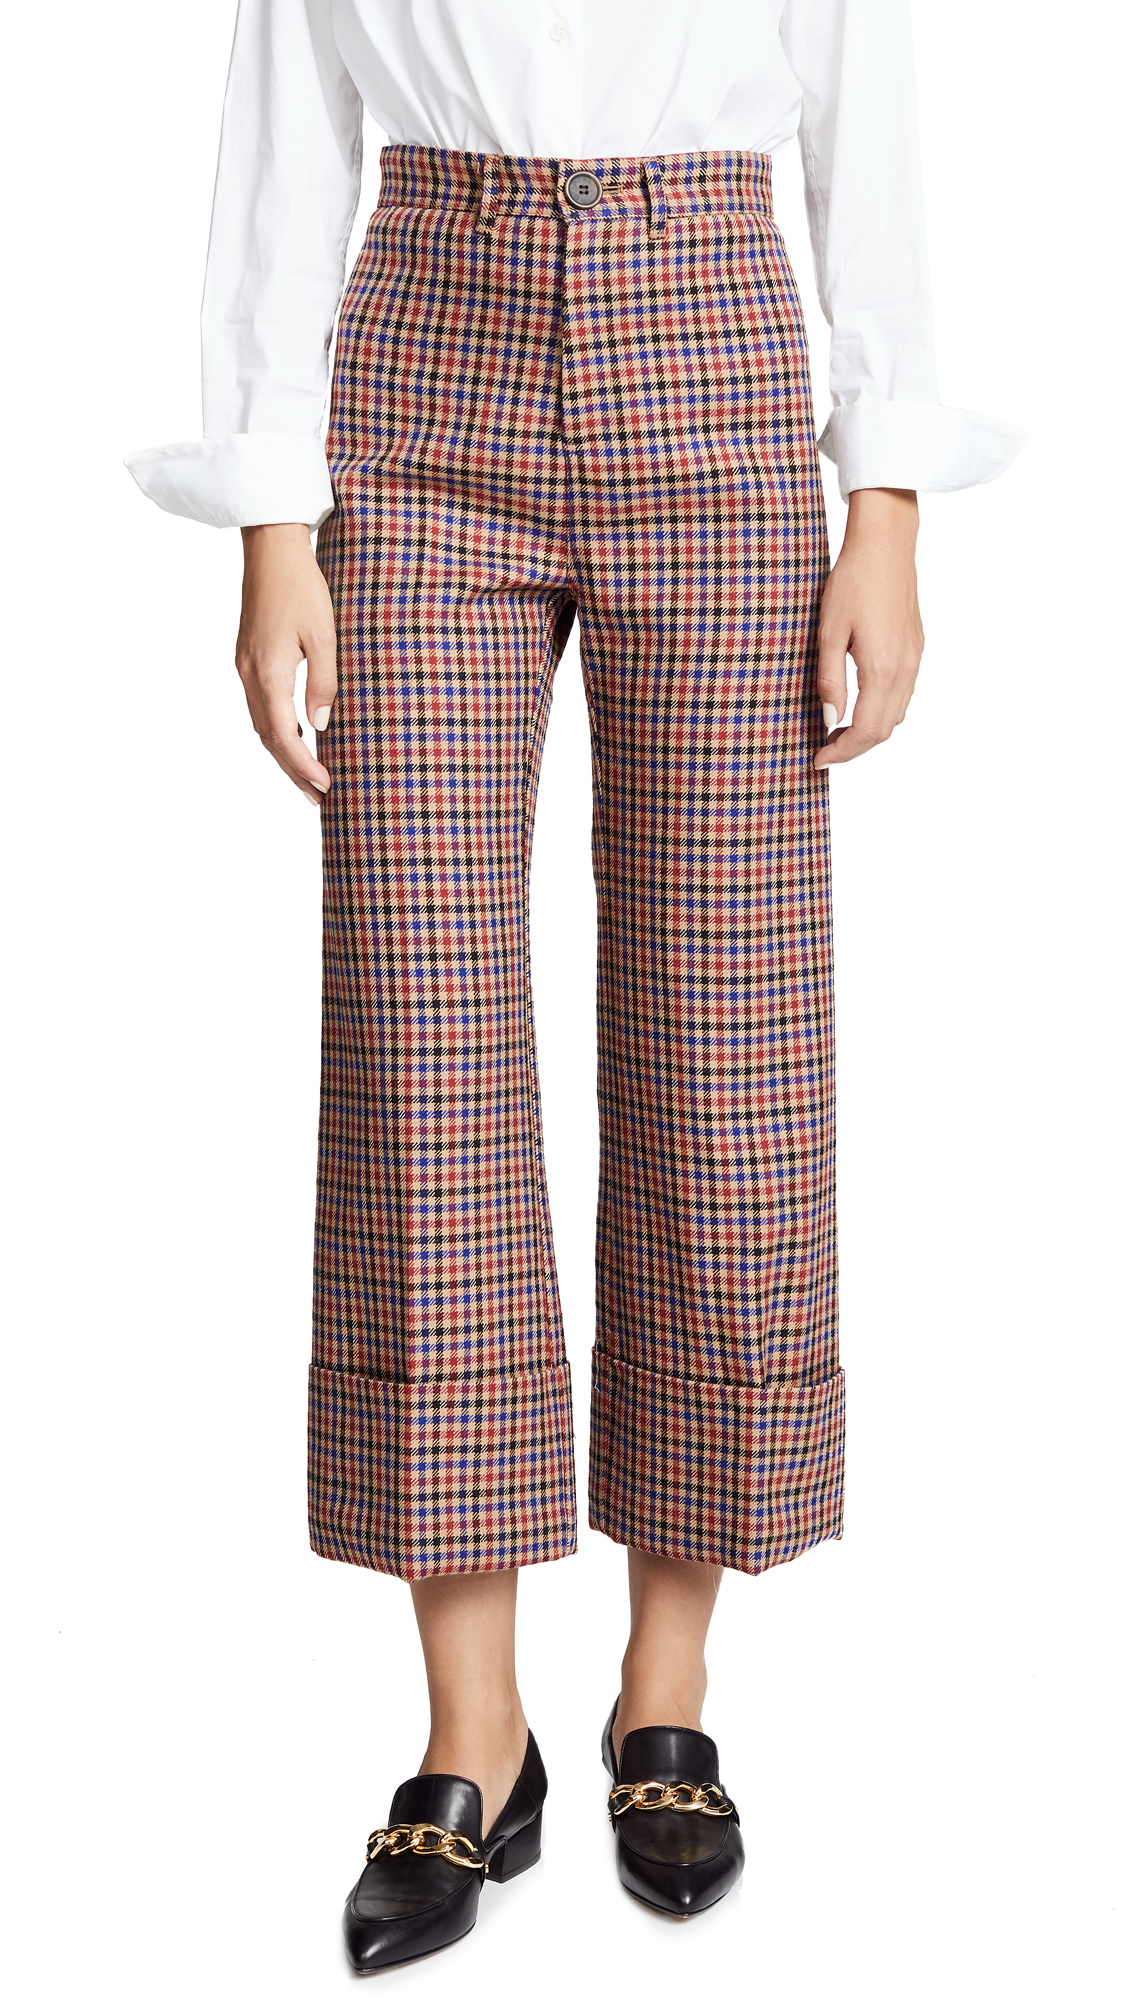 Sea Cuffed Pants In Blue/Red Check